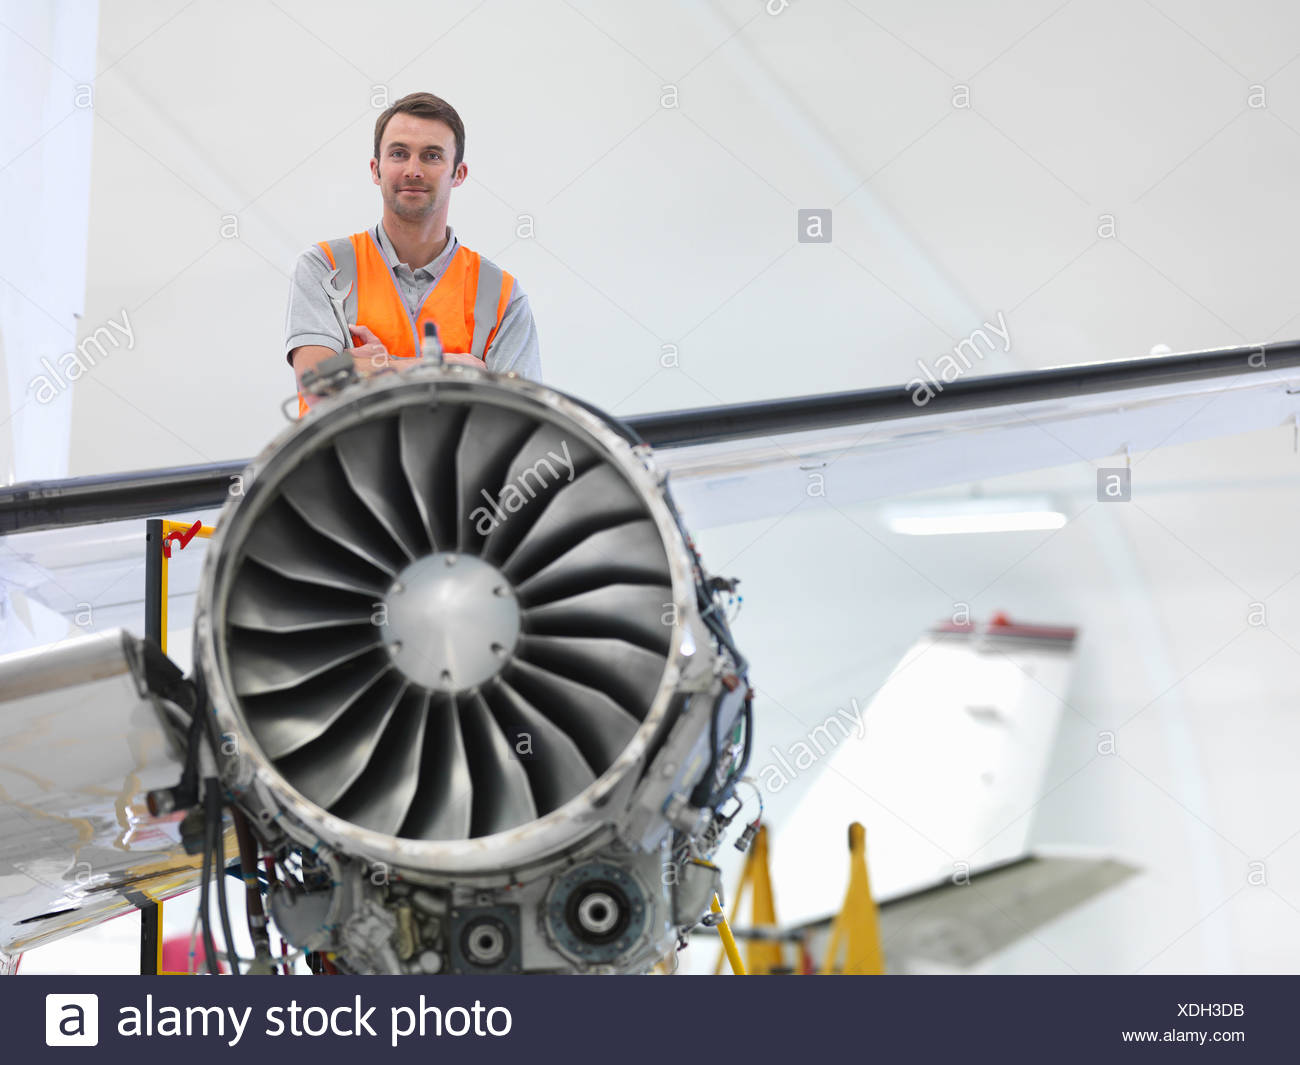 Engineer with jet engine - Stock Image